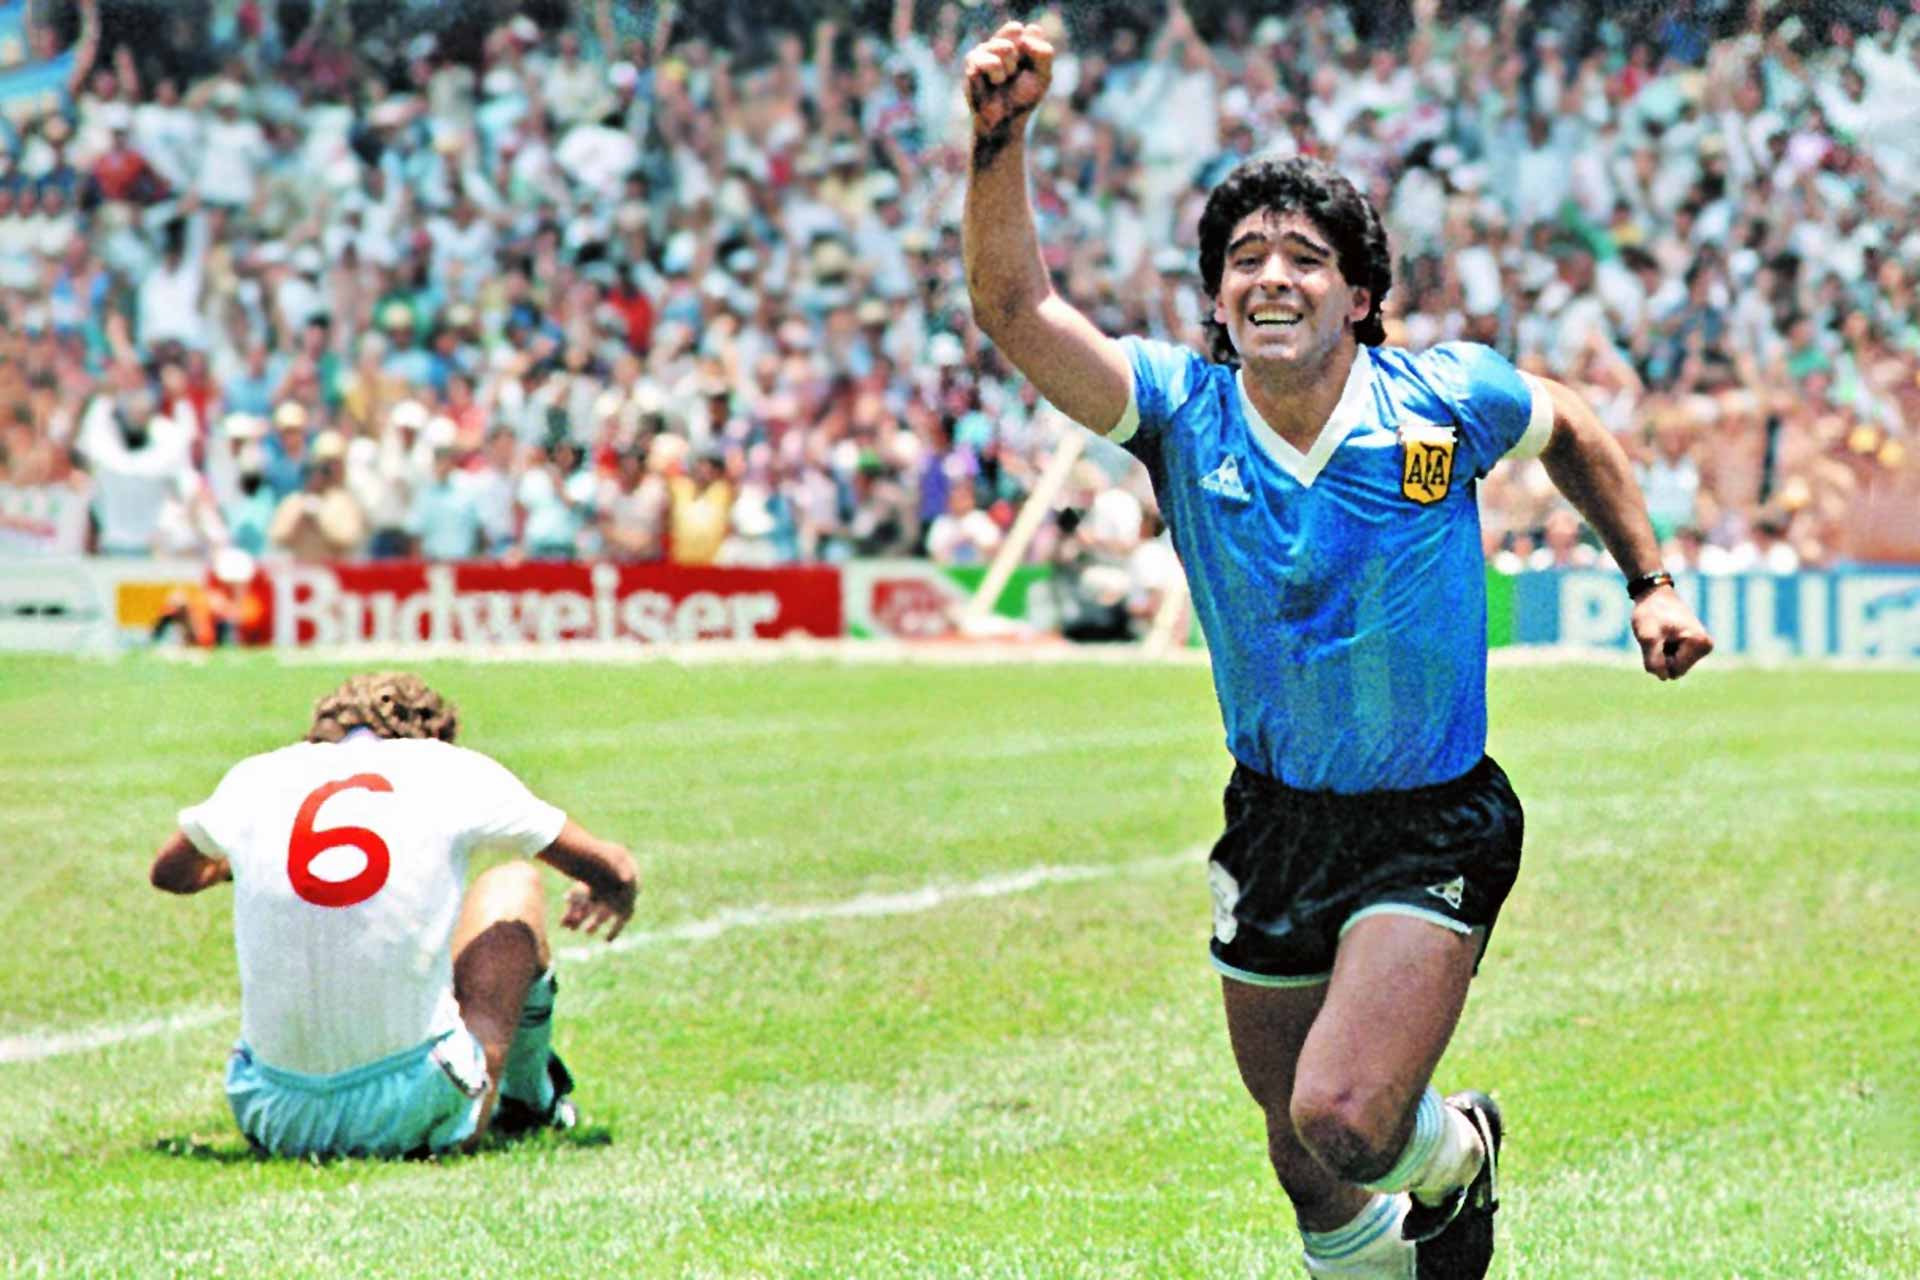 Diego Maradona celebrating his goal against England in 1986 (Photo: Dani Yako / Source: Clarín)